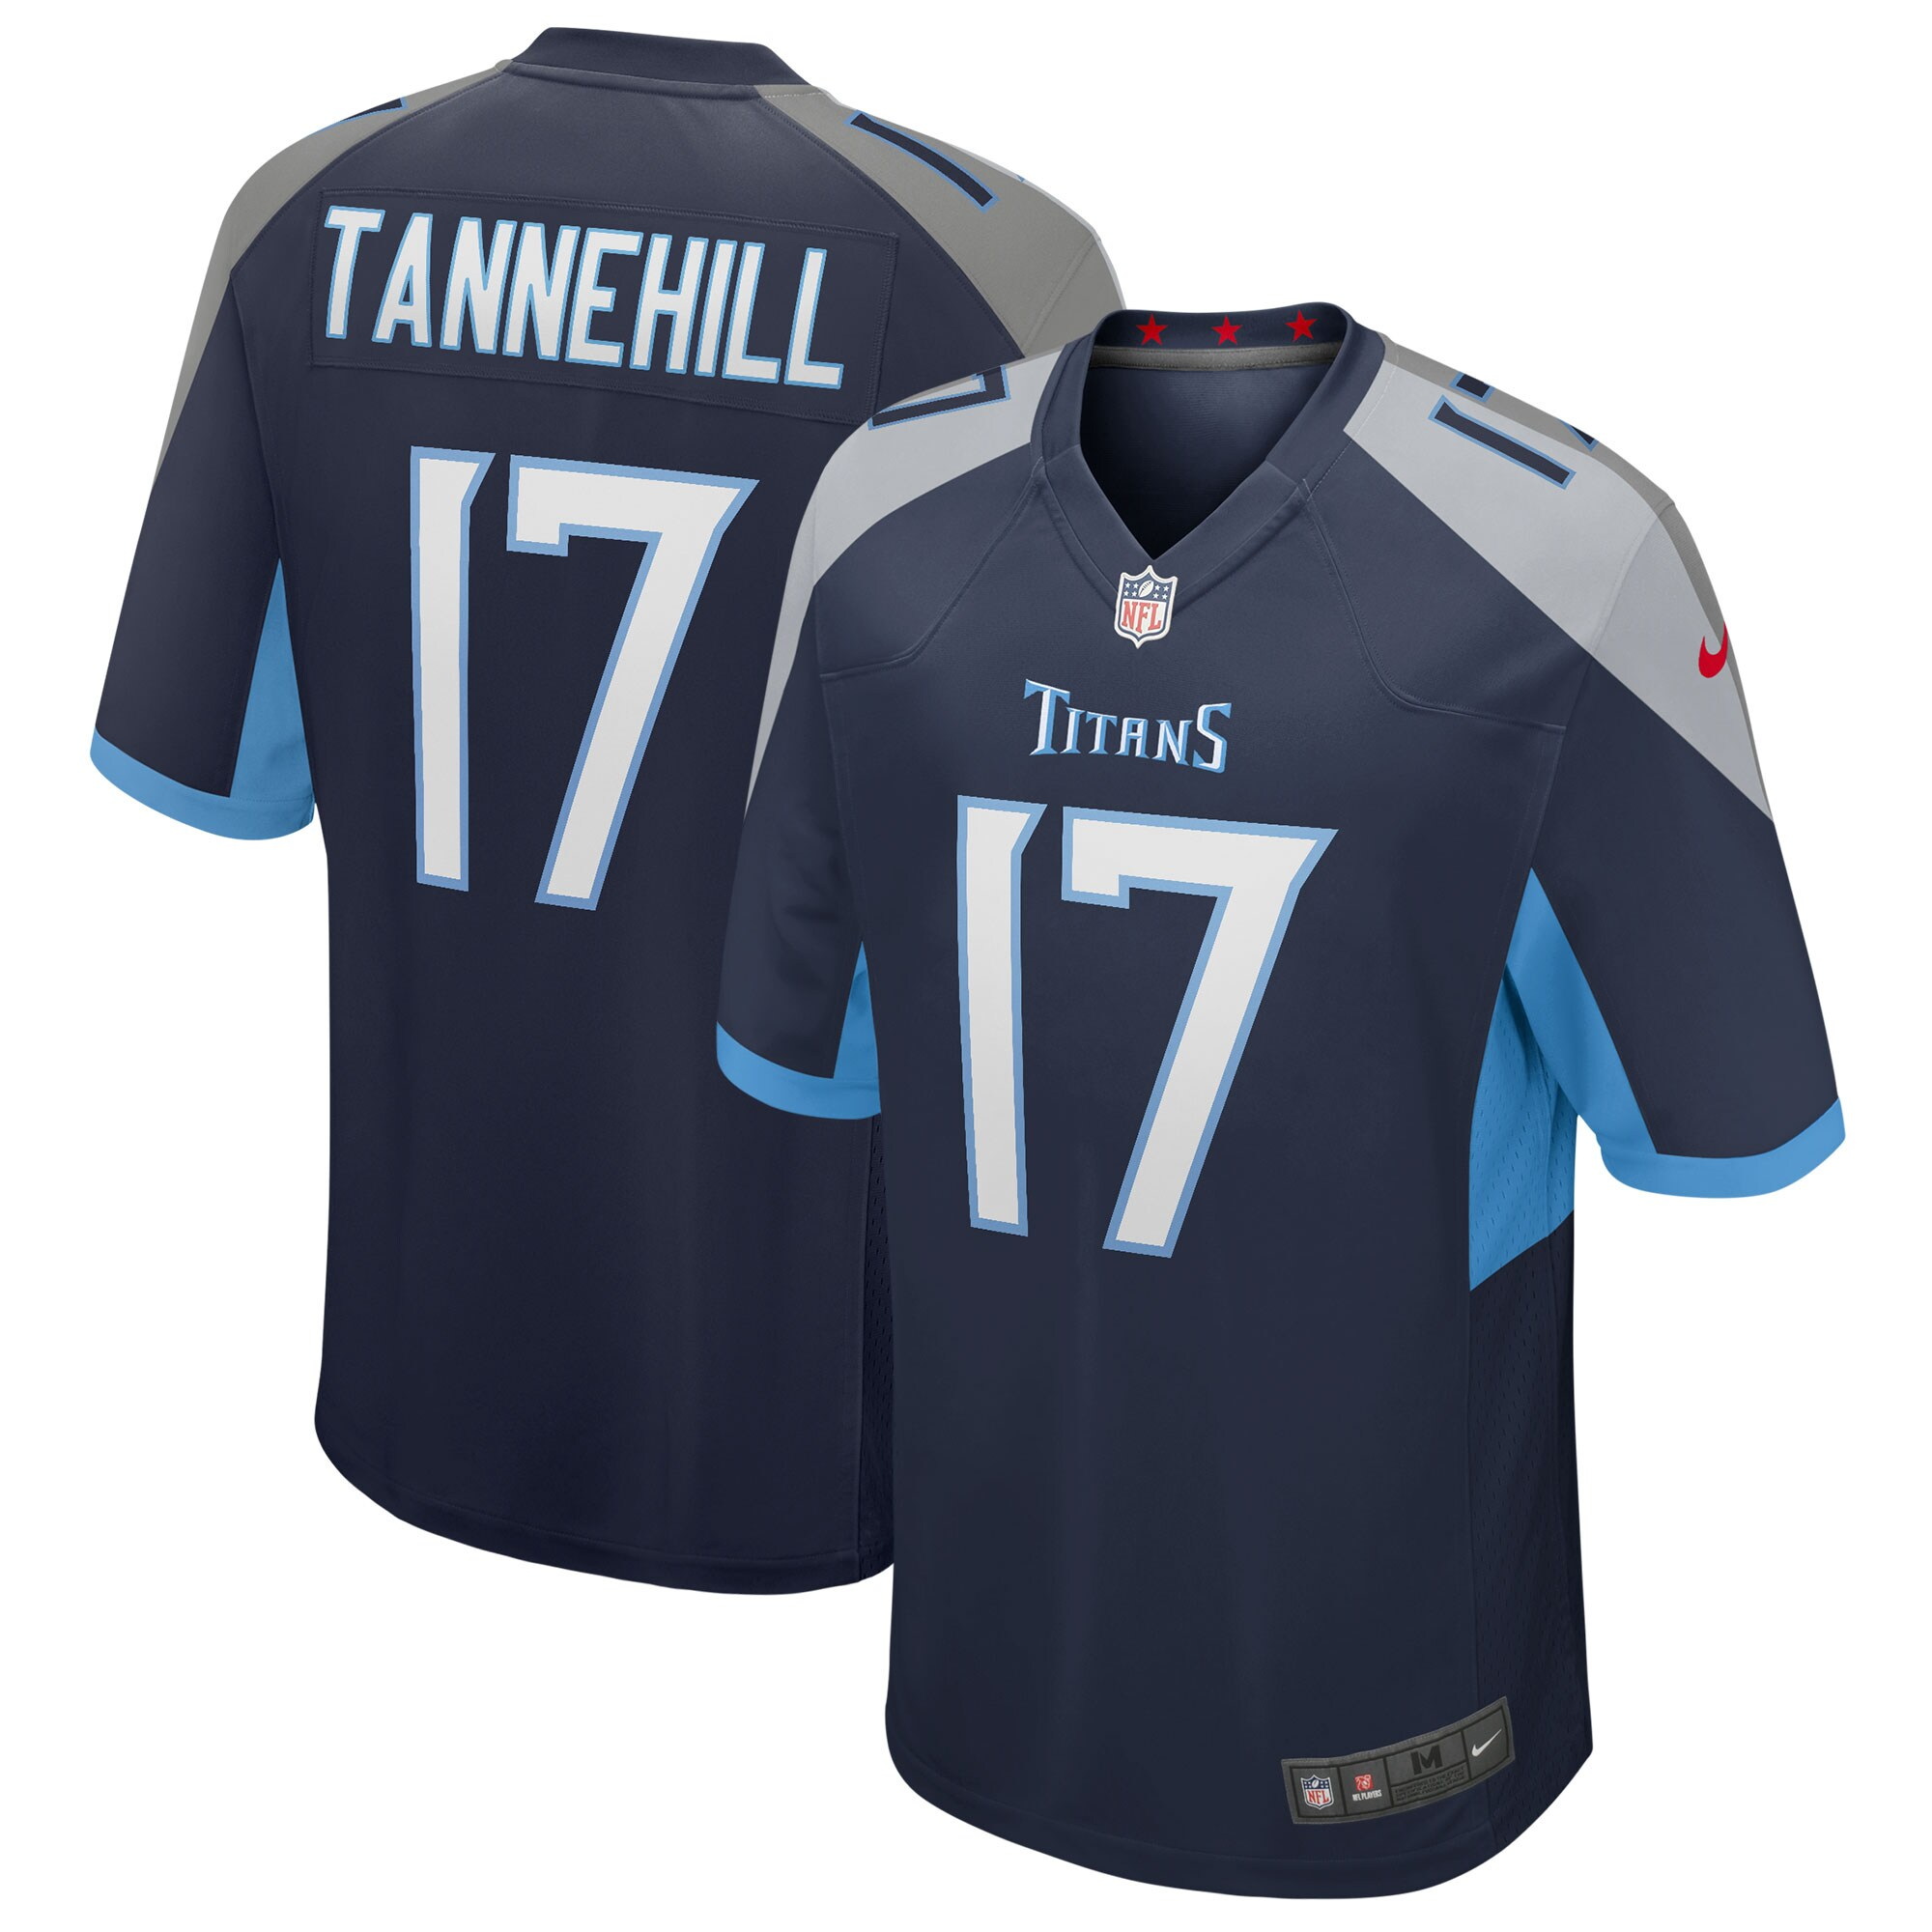 Tennessee Titans Home Game Jersey - Ryan Tannehill sales wholesale jerseys china